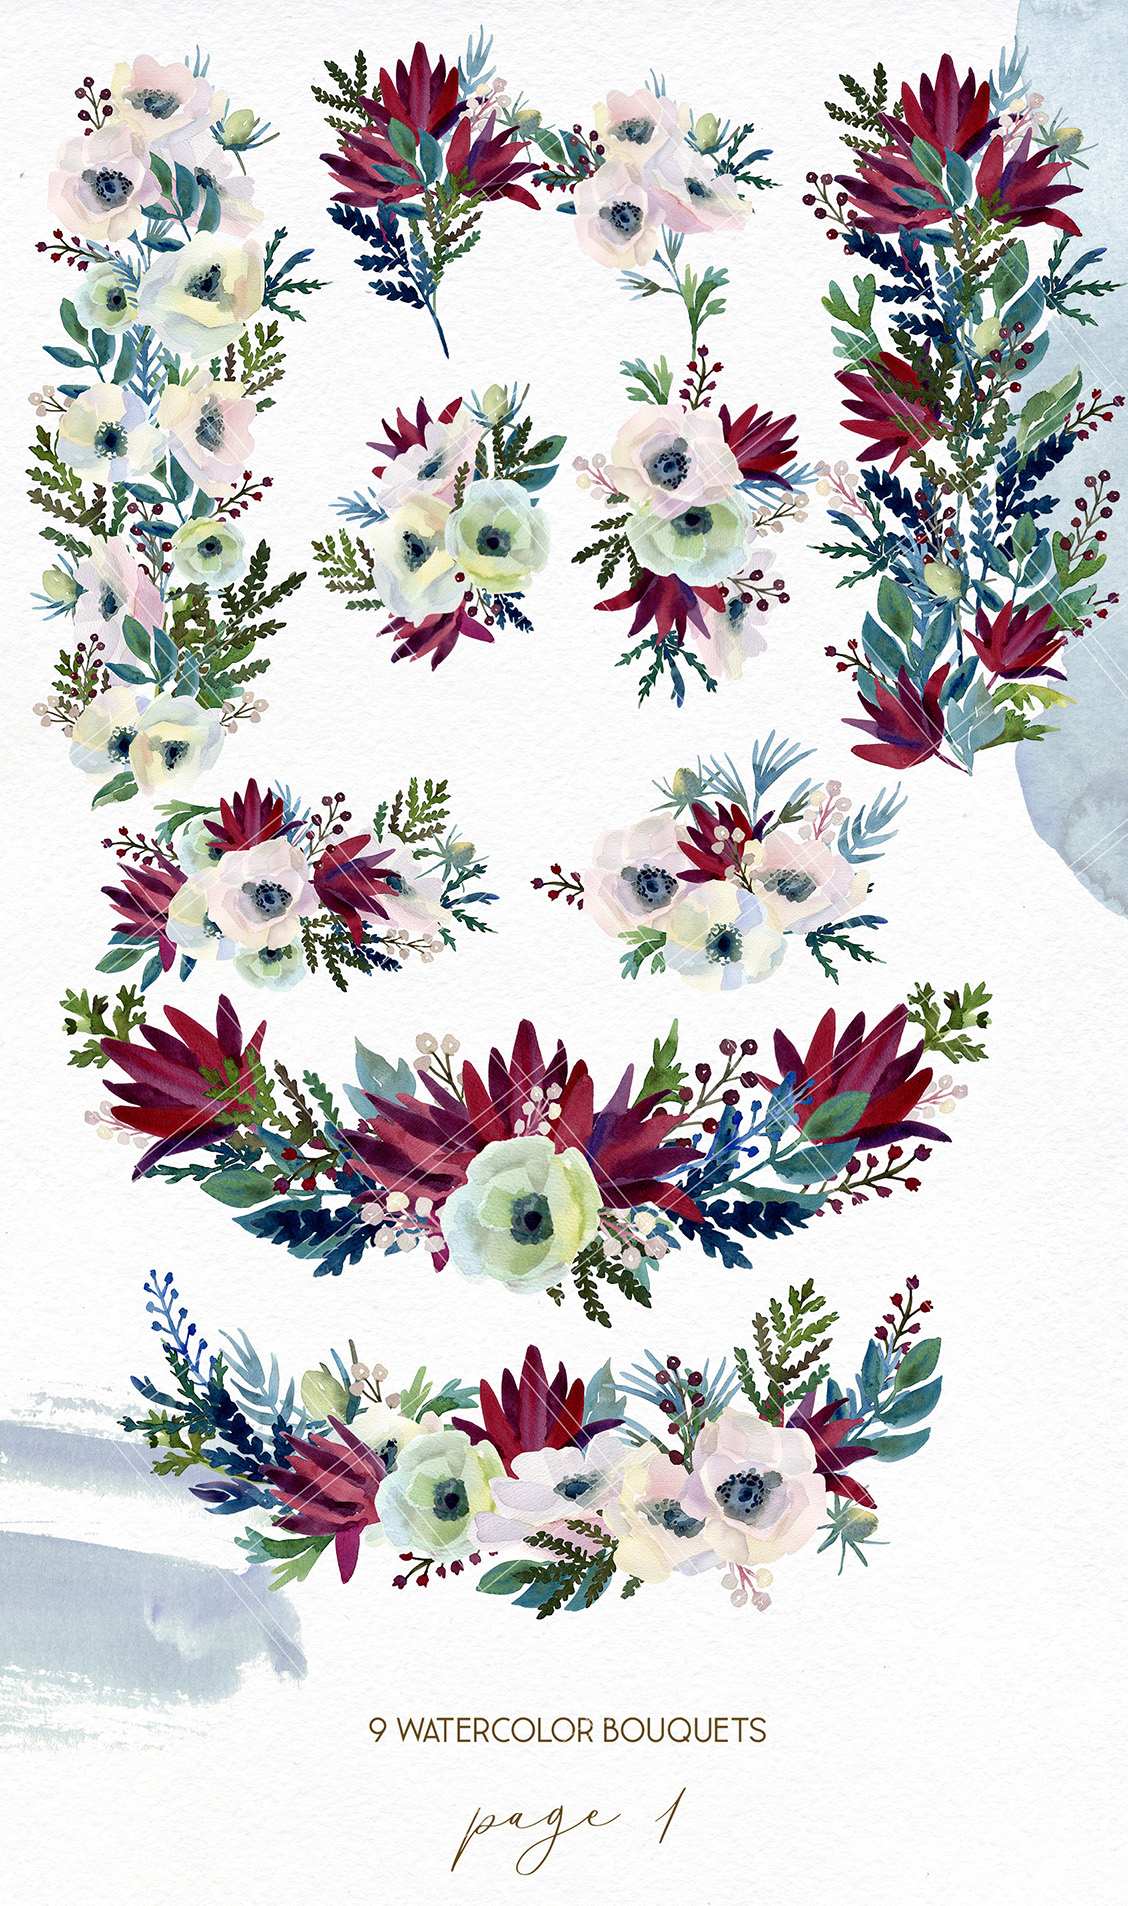 Watercolor anemone wedding floral bouquets, line art flower example image 2